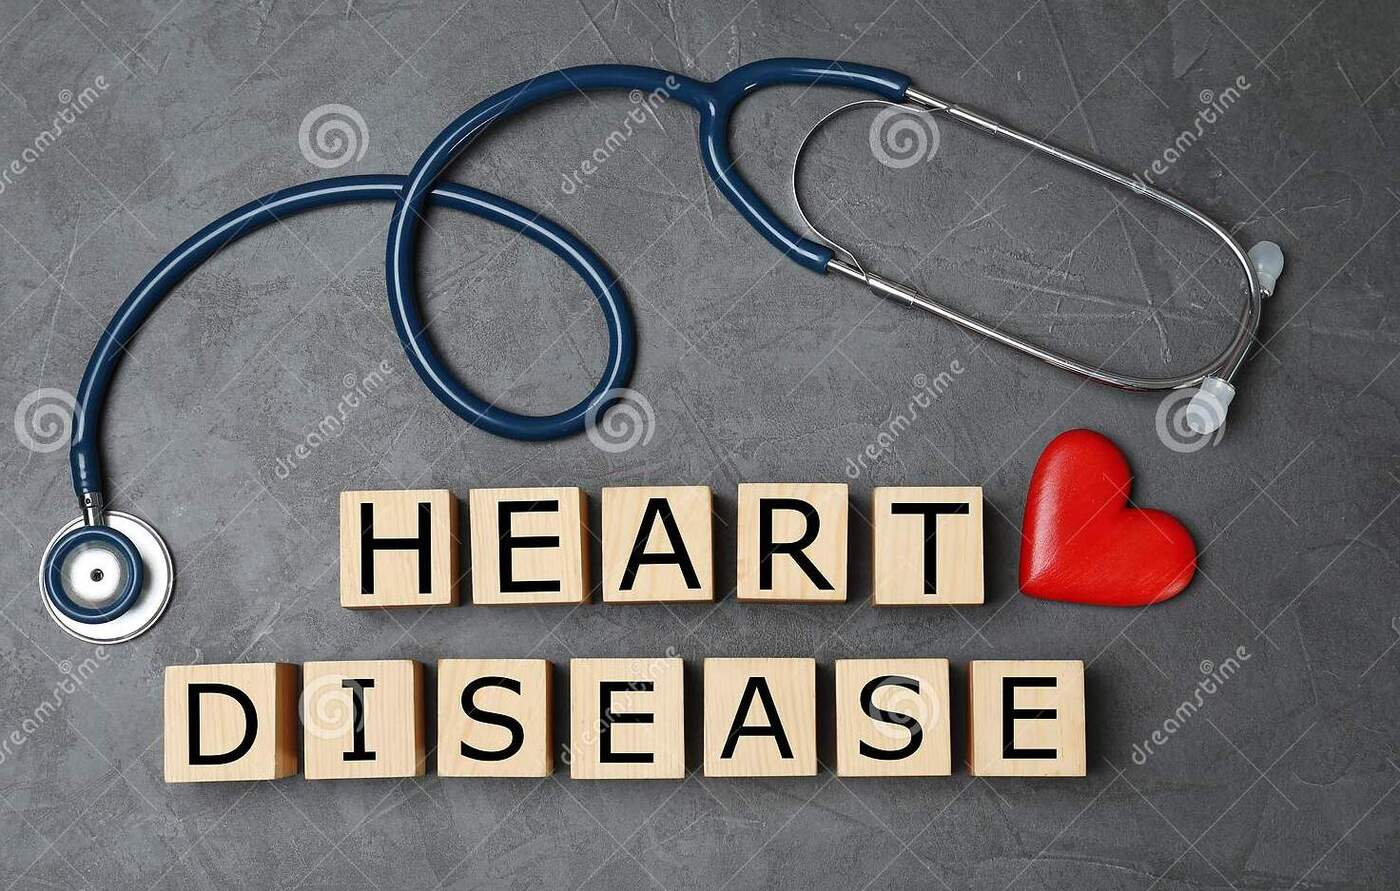 Everything you wanted to know about Coronary Heart Disease